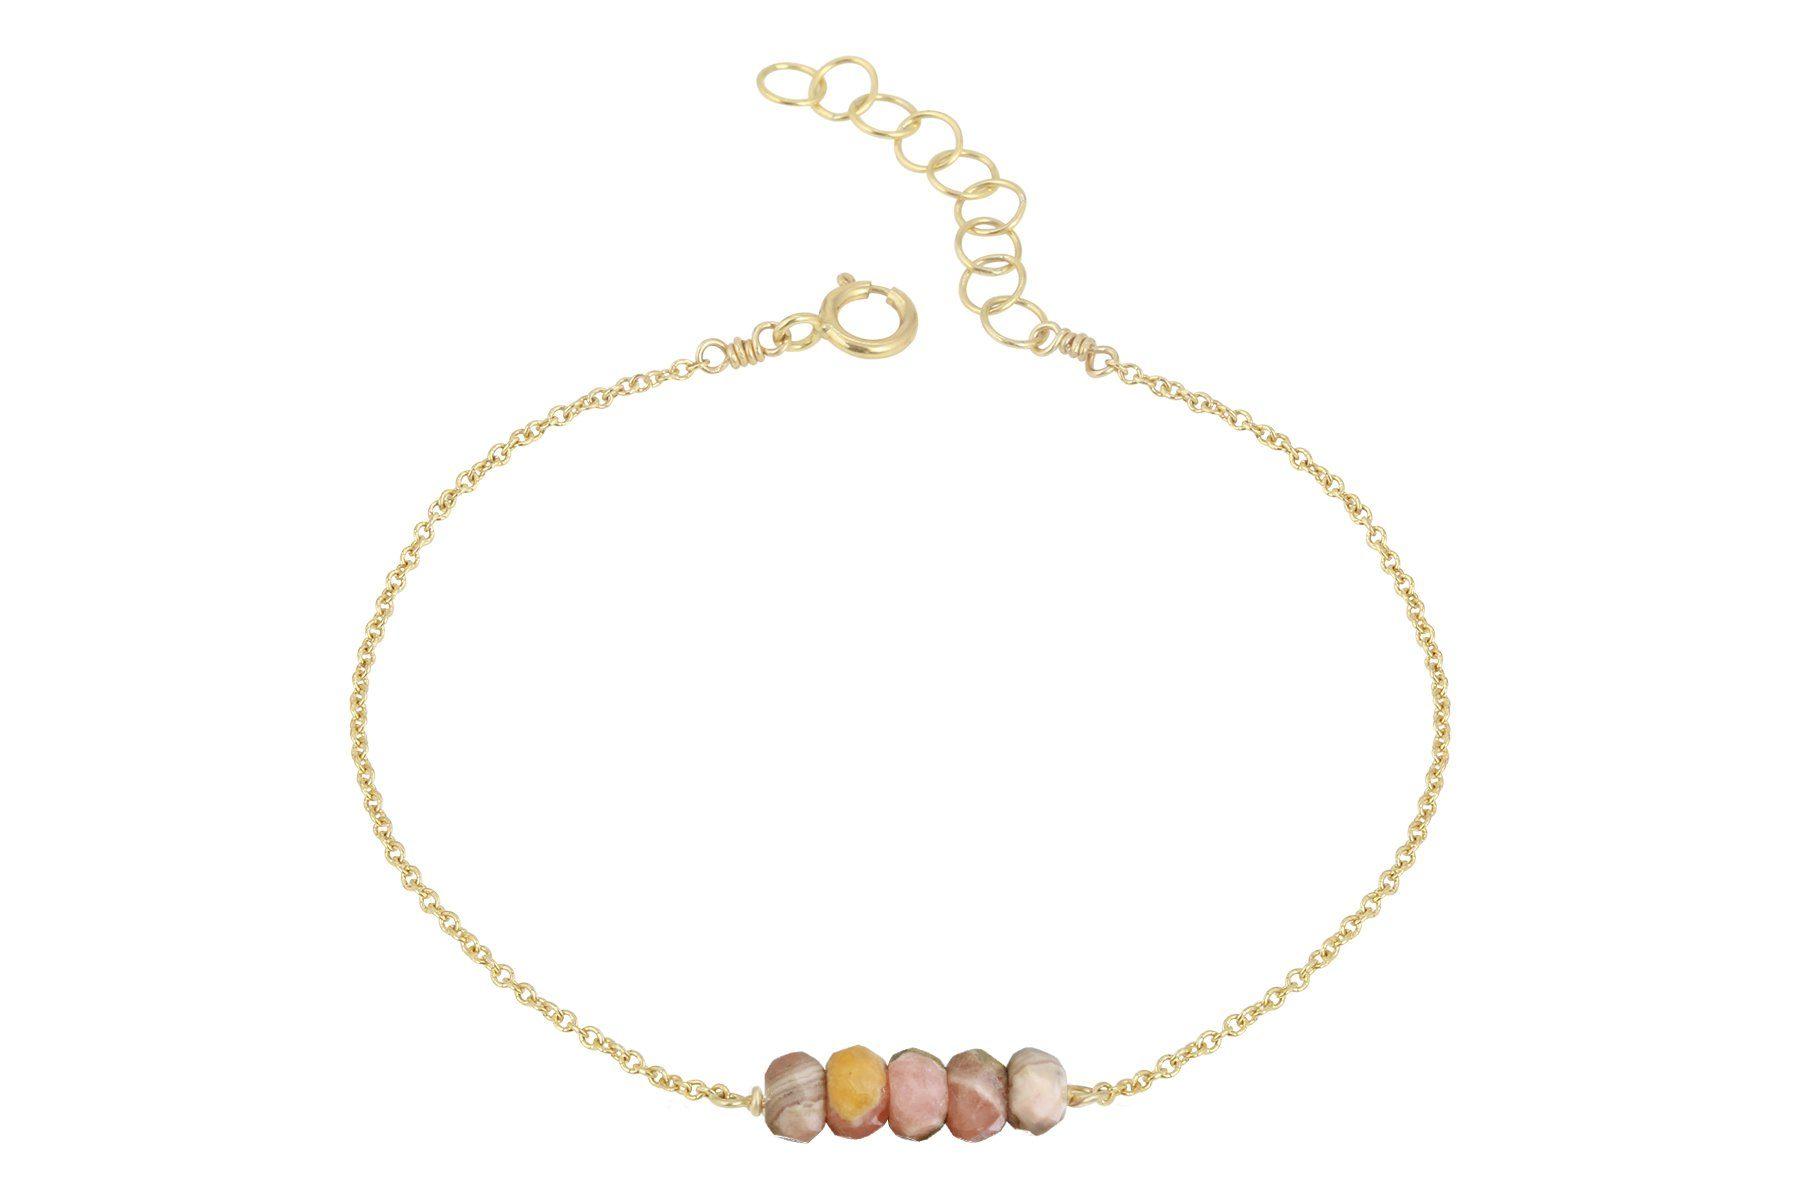 Elements- Rhodochrosite 5 stone gold filled adjustable chain bracelet - Amanda K Lockrow